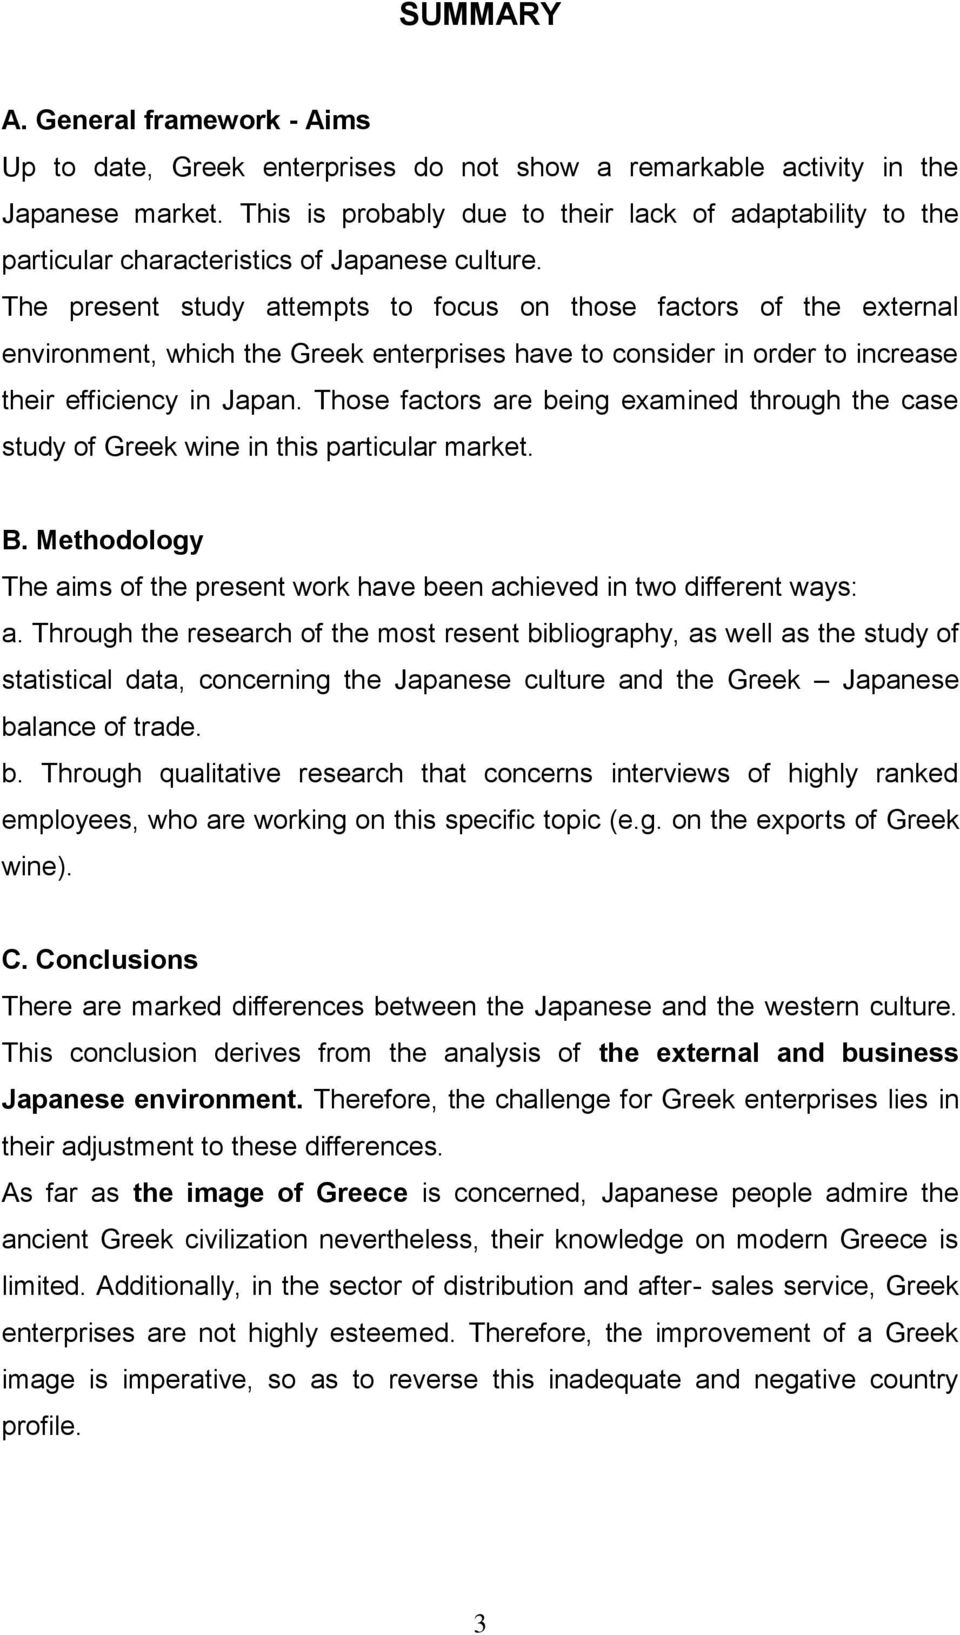 The present study attempts to focus on those factors of the external environment, which the Greek enterprises have to consider in order to increase their efficiency in Japan.